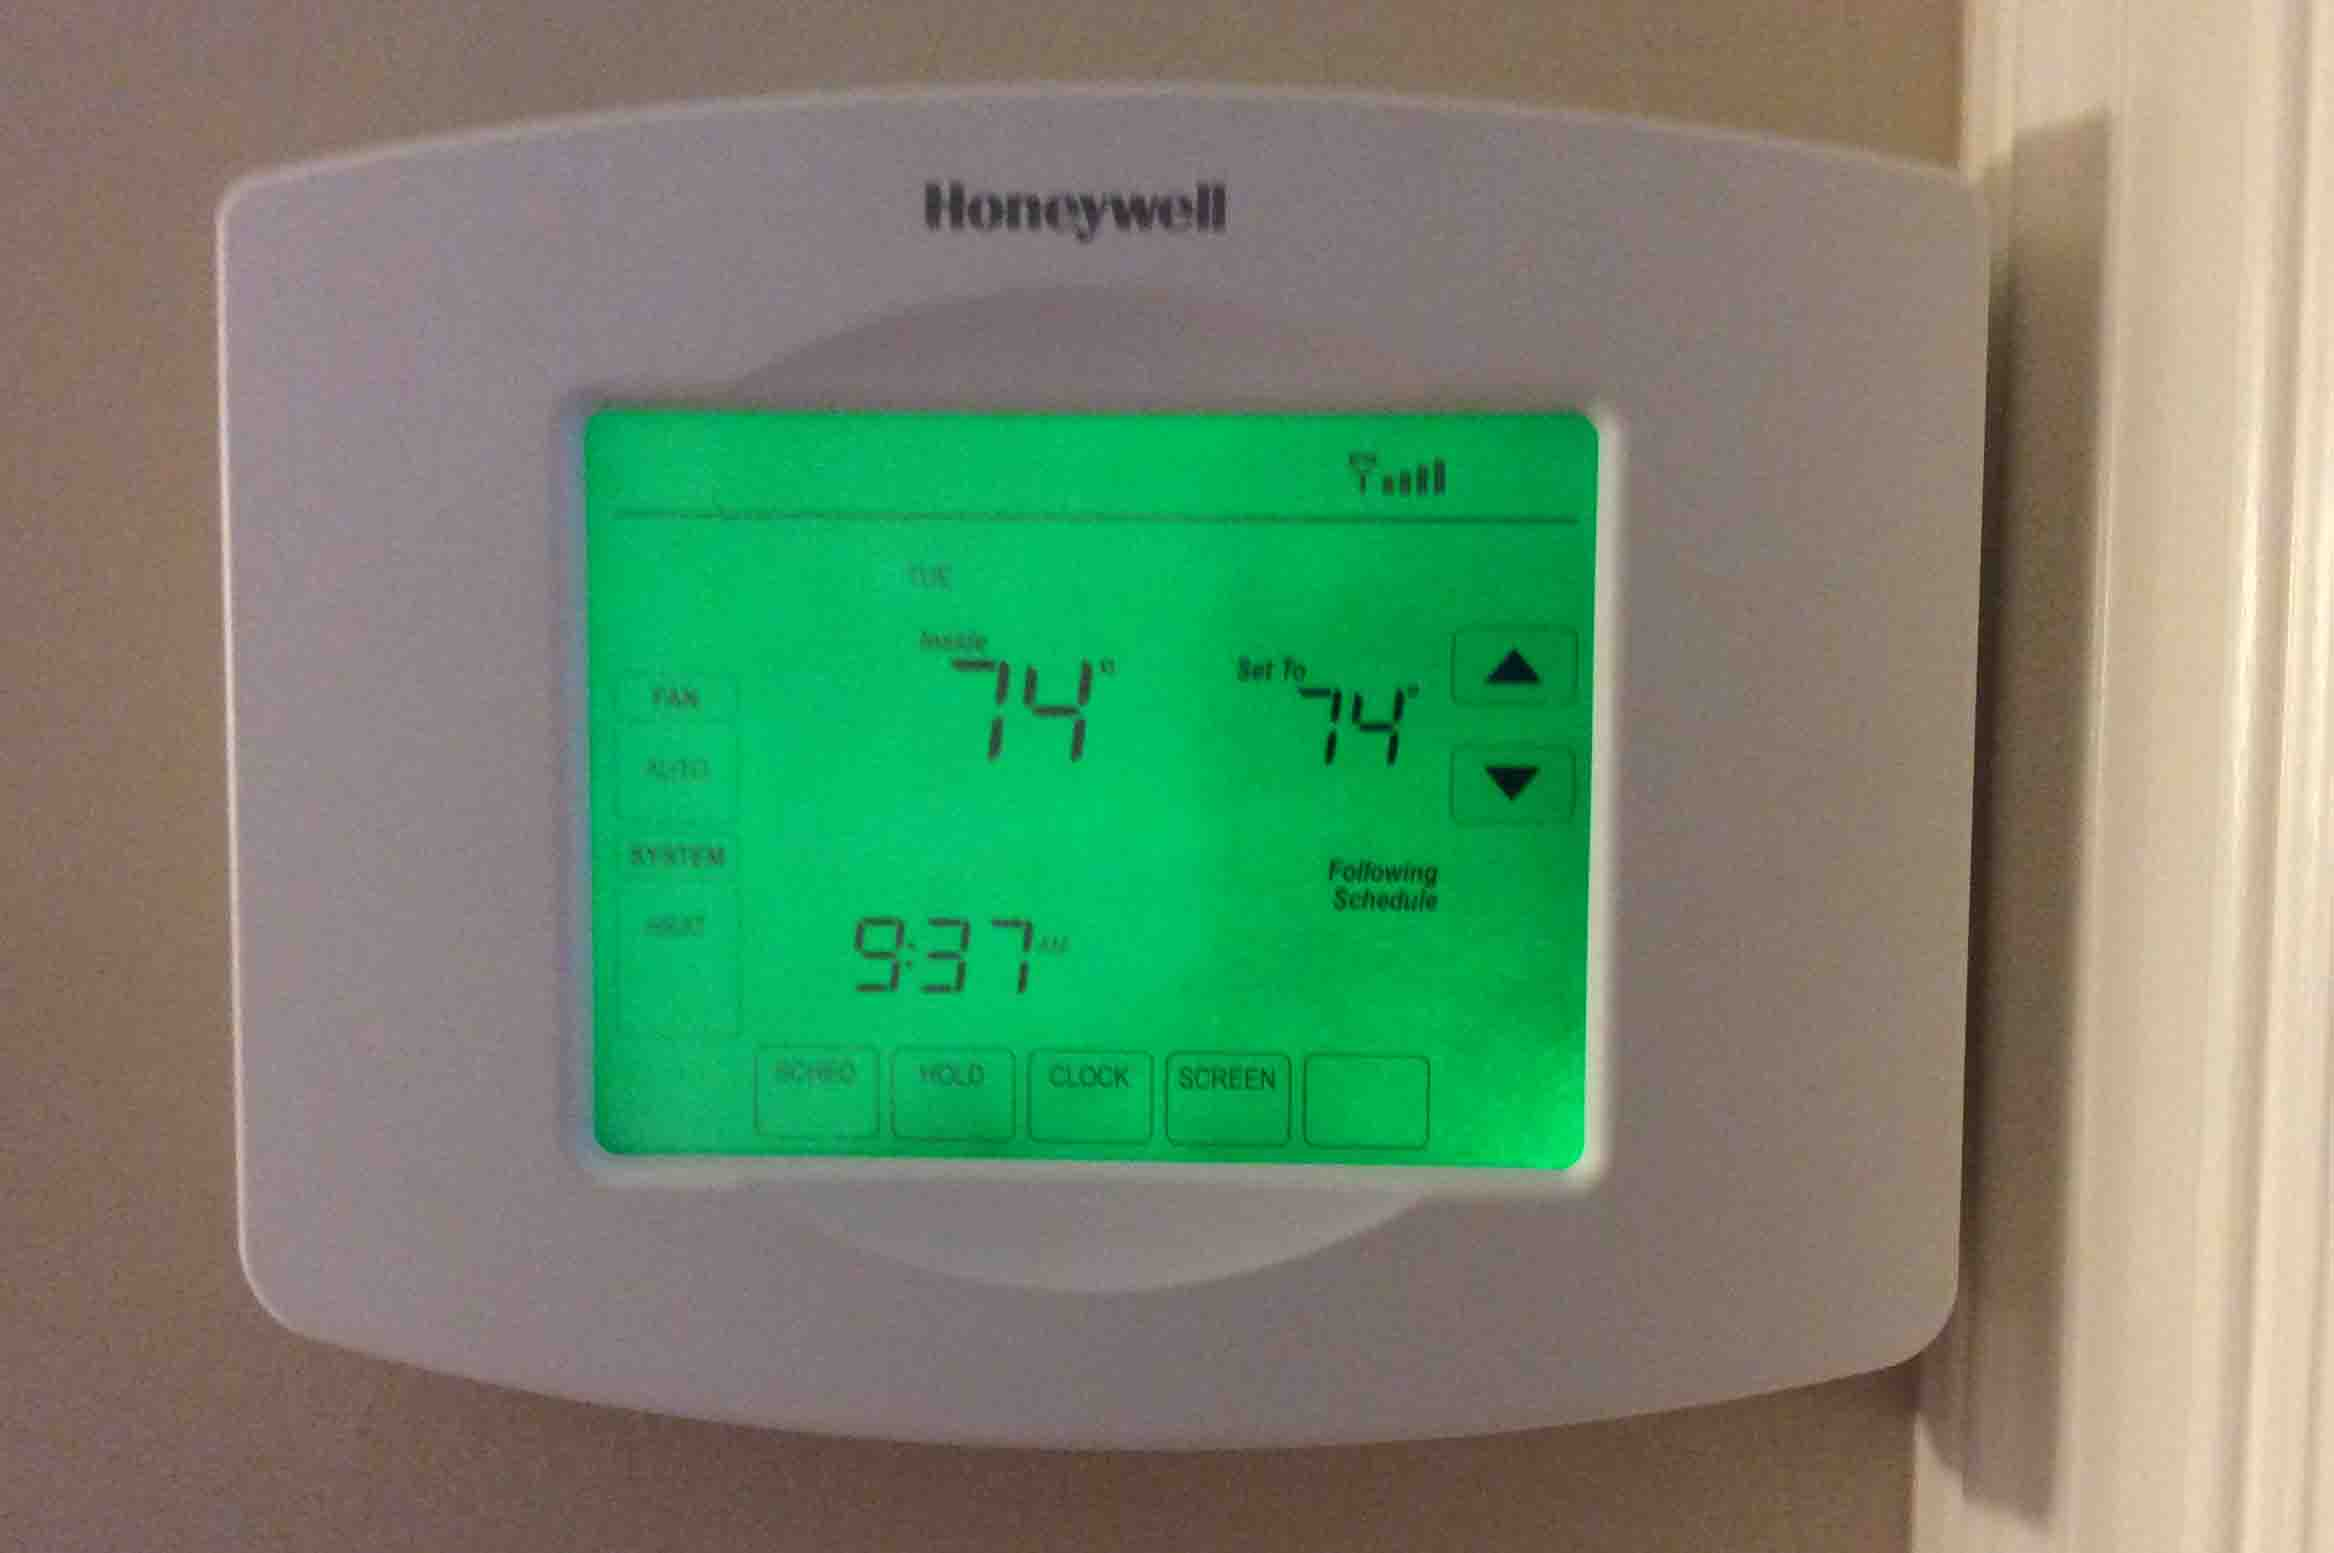 How do i hook up a honeywell thermostat